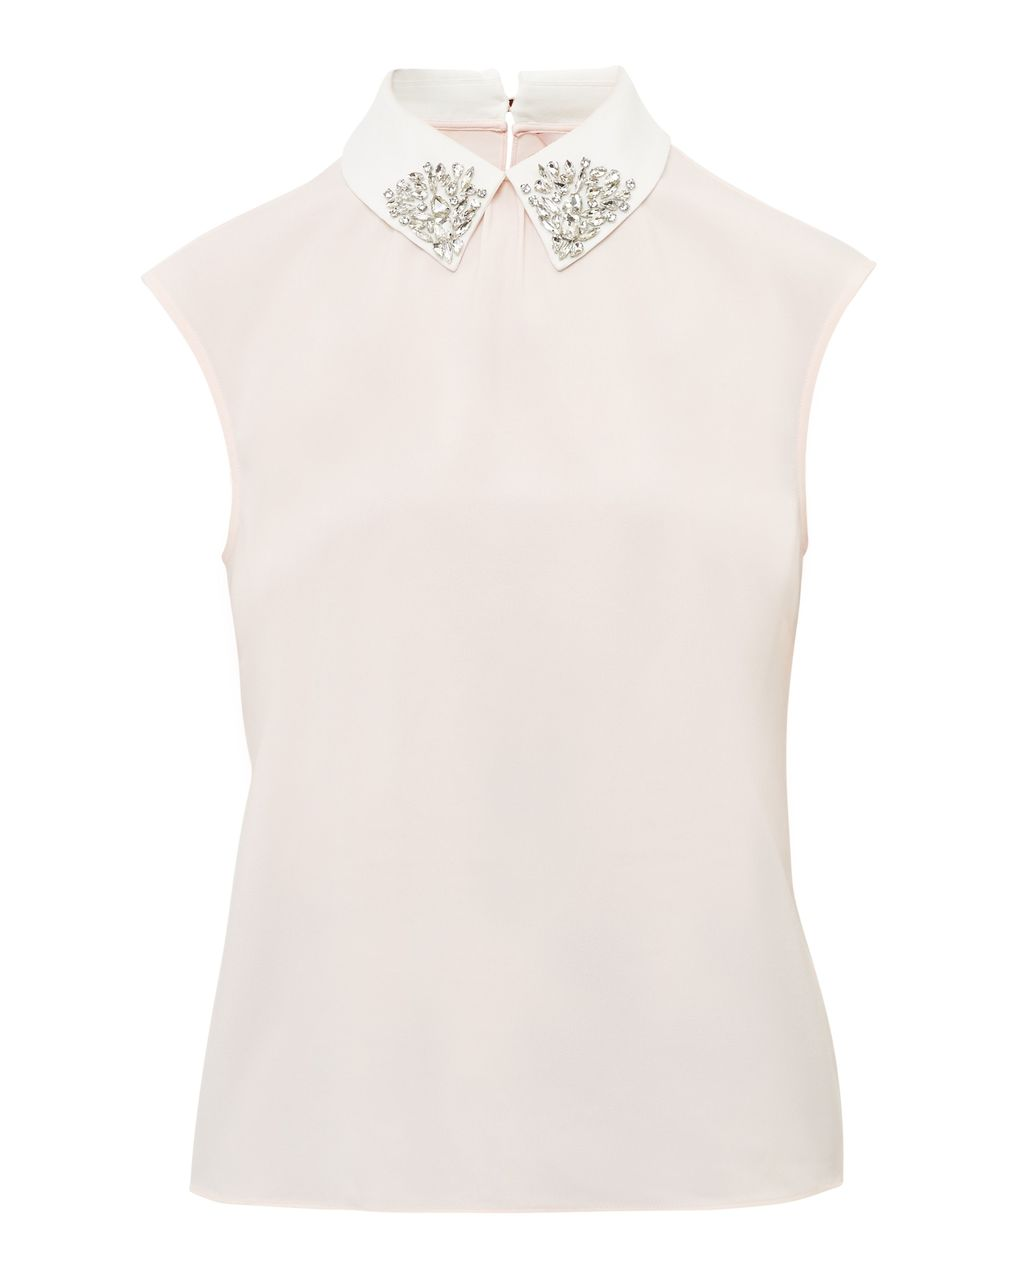 Edah Embellished Collar Top, Blush - pattern: plain; sleeve style: sleeveless; predominant colour: blush; occasions: evening; length: standard; style: top; fibres: polyester/polyamide - stretch; fit: body skimming; neckline: no opening/shirt collar/peter pan; sleeve length: sleeveless; pattern type: fabric; texture group: other - light to midweight; embellishment: sequins; season: a/w 2016; wardrobe: event